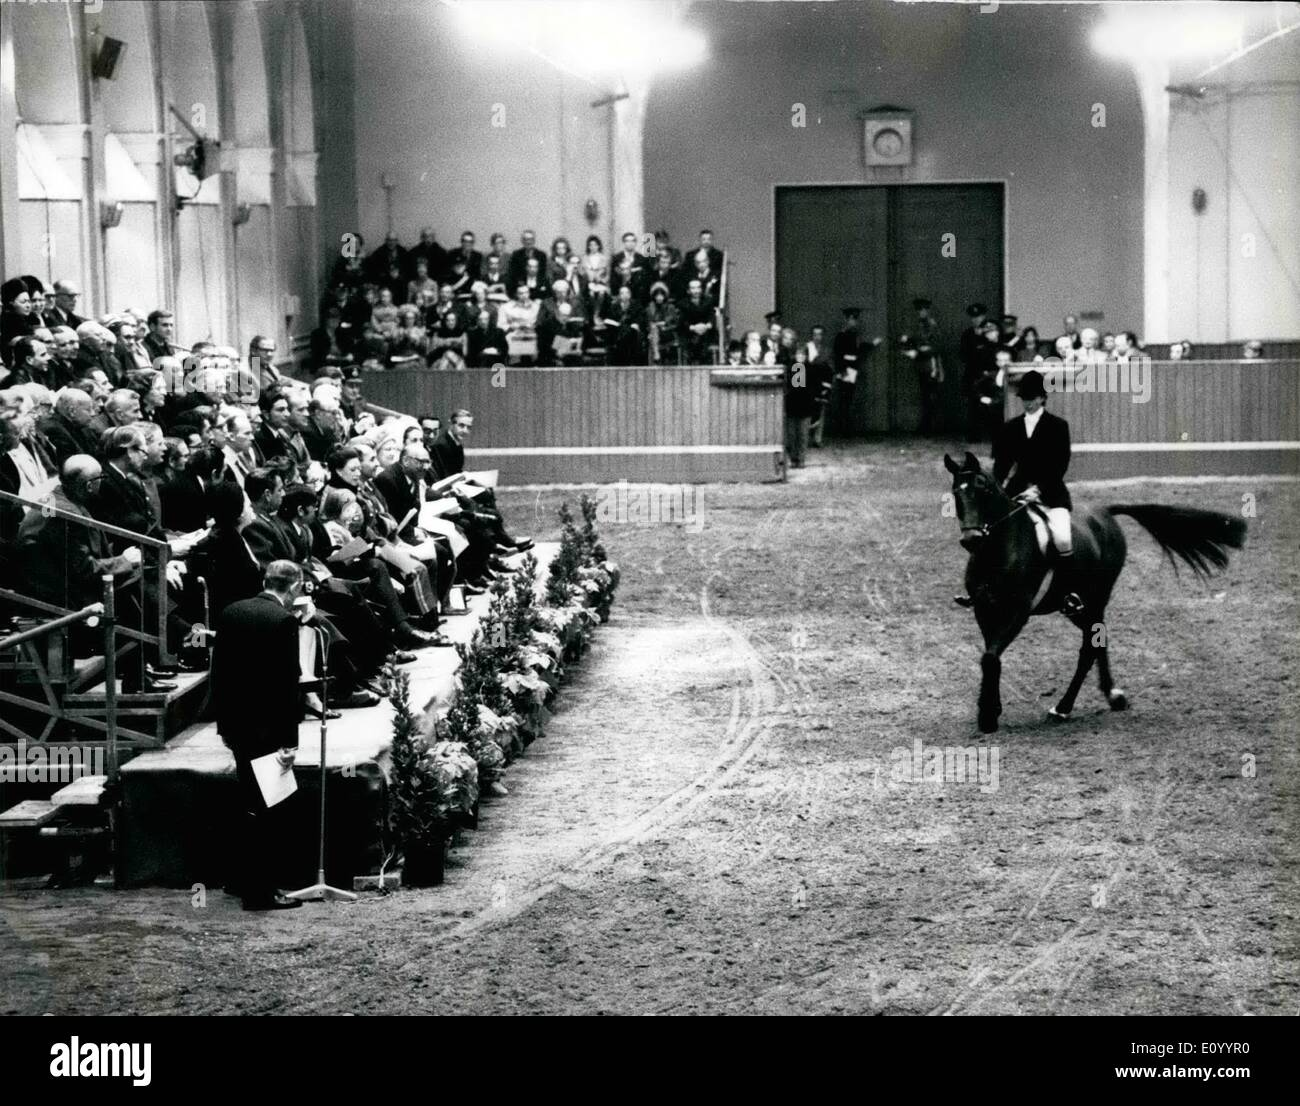 Dec. 12, 1971 - Princess Anne at Royal Horse Show. The Queen and the Duke of Edinburgh , and the King of Afghanistan , with H.R.H. Princess Bilquis saw a display of horses in the Riding School of the Royal Mews at Buckingham Palace last night. Climas of the display was Princess Anne who rode into the arena. Photo shows Princess Anne riding into the arena last night. The Royal Box with the King of Afghanistan , H.M. Queen Elizabeth II and other members of the Royal family is on the left. - Stock Image